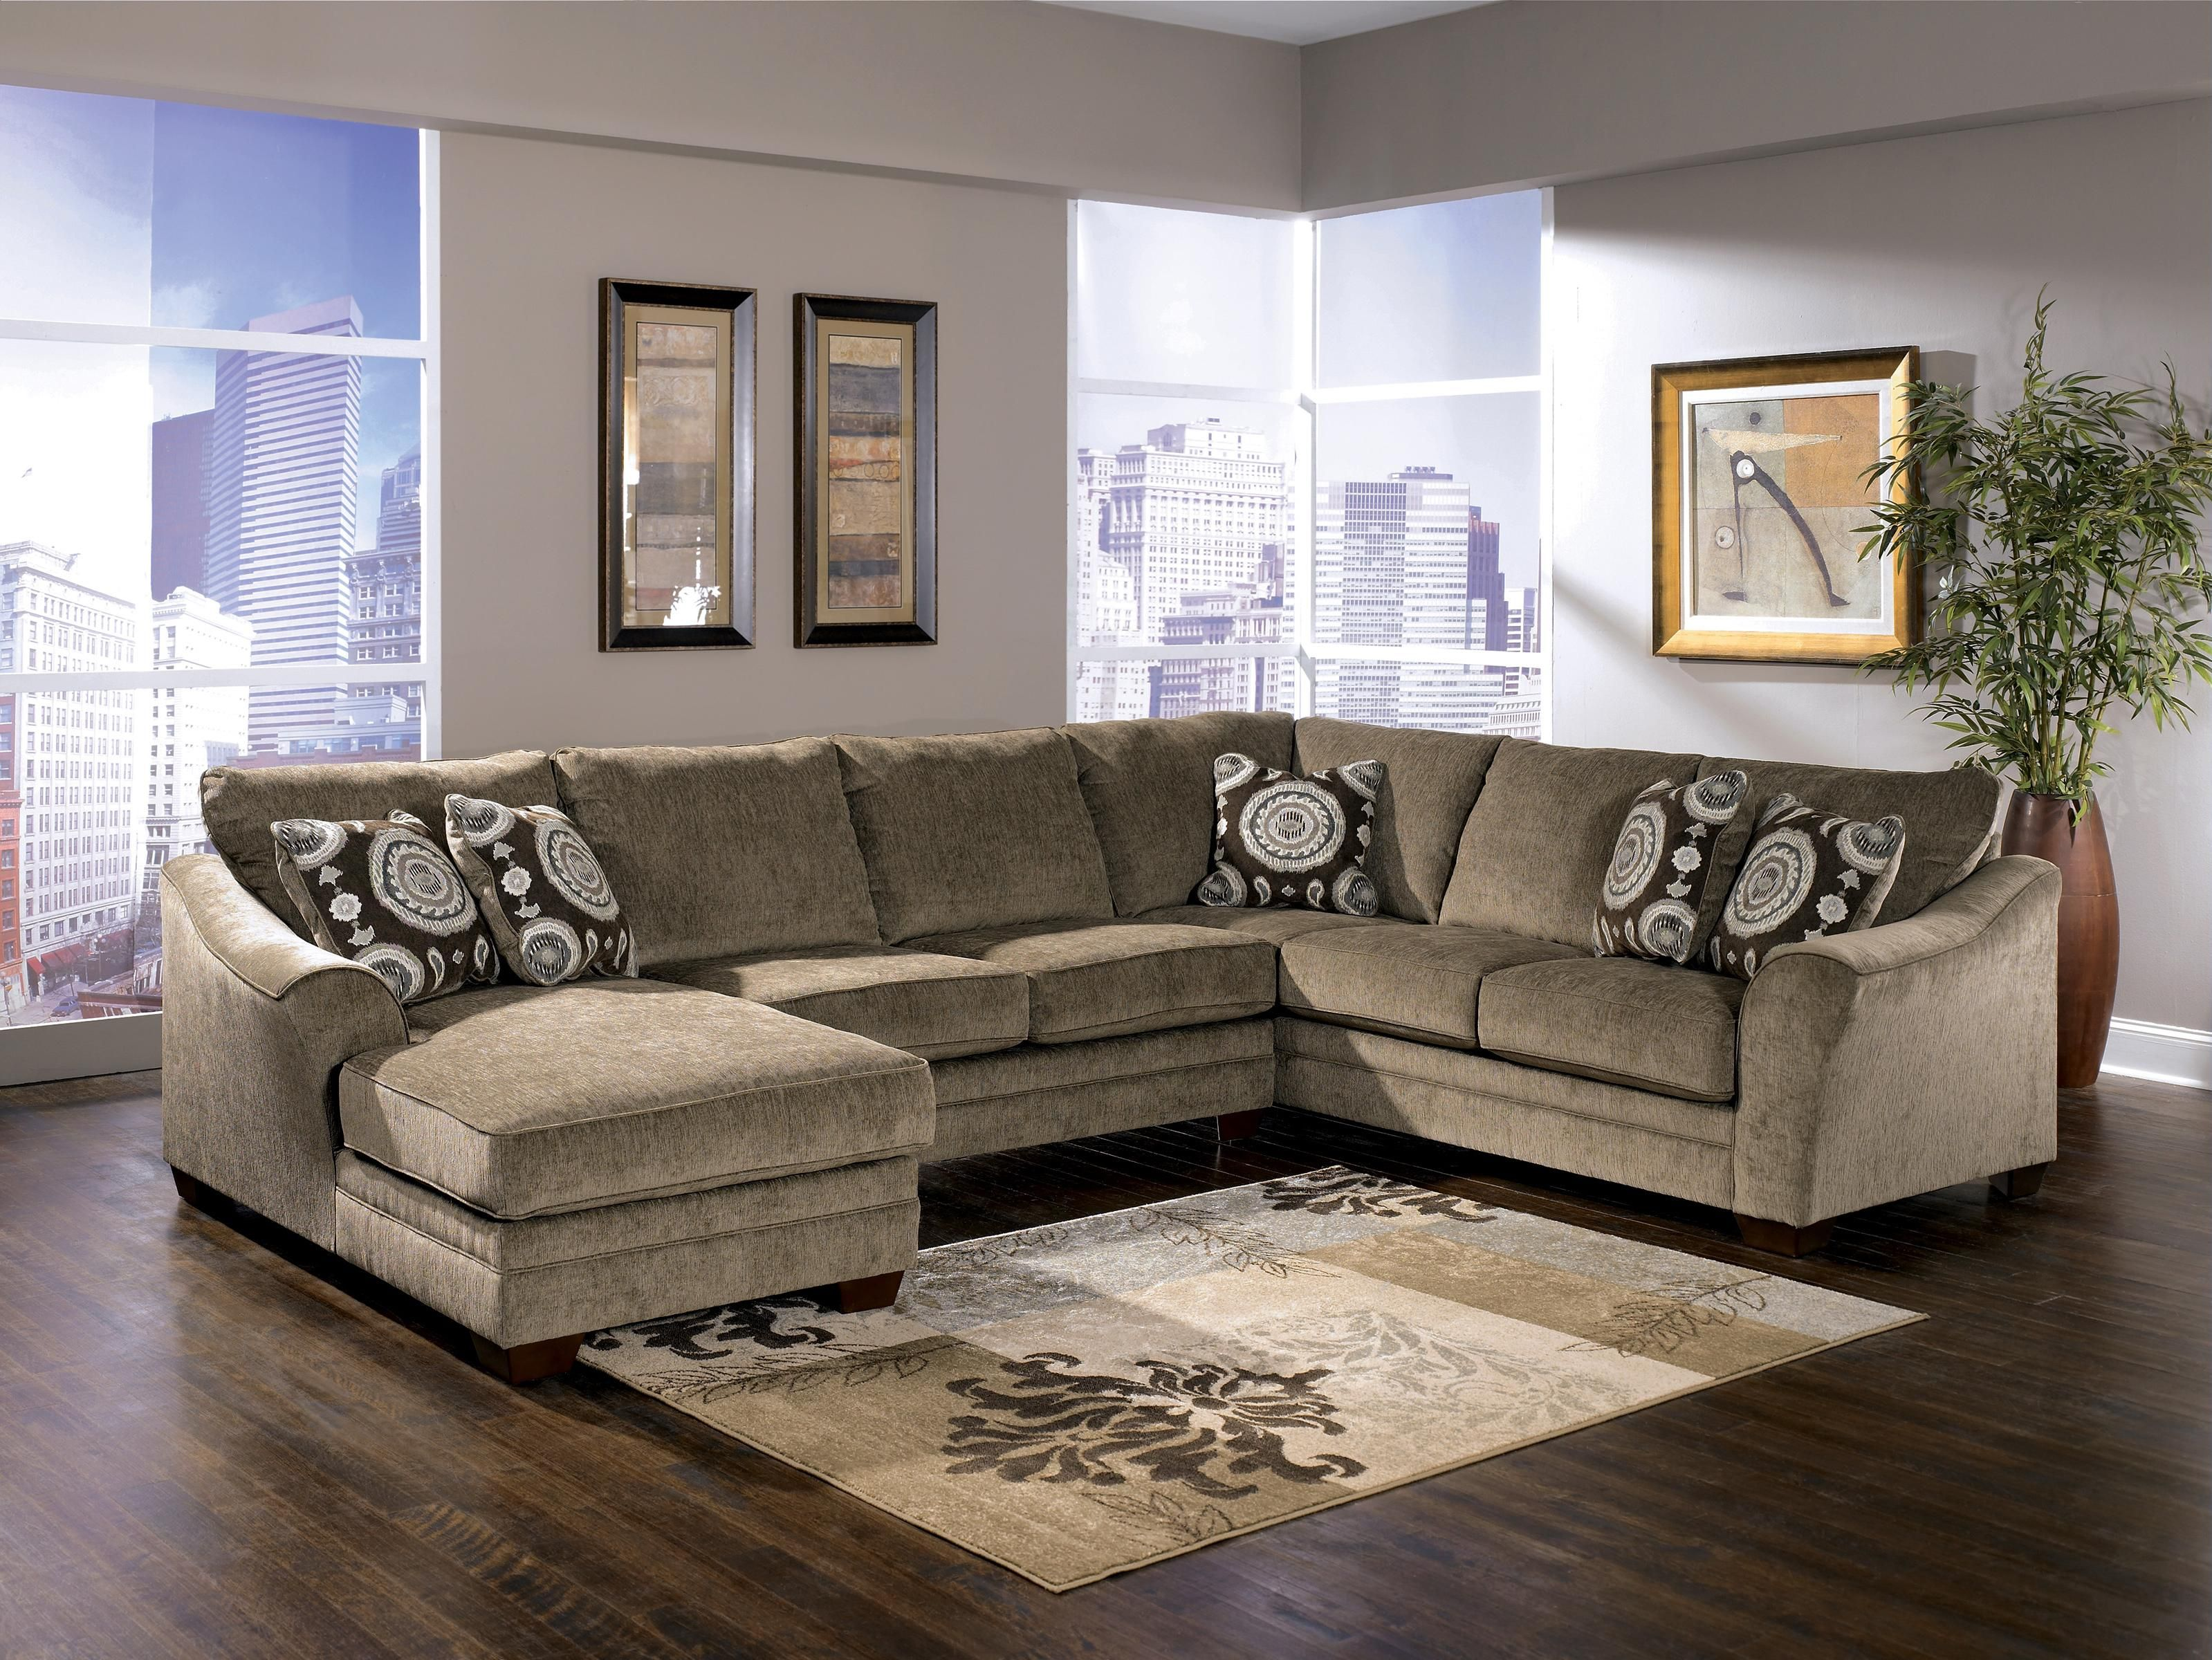 Cosmo   Marble Sectional Sofa With Chaise Lounger By Signature Design By  Ashley   Becker Furniture World   Sofa Sectional Twin Cities, Minneapolis,  ...